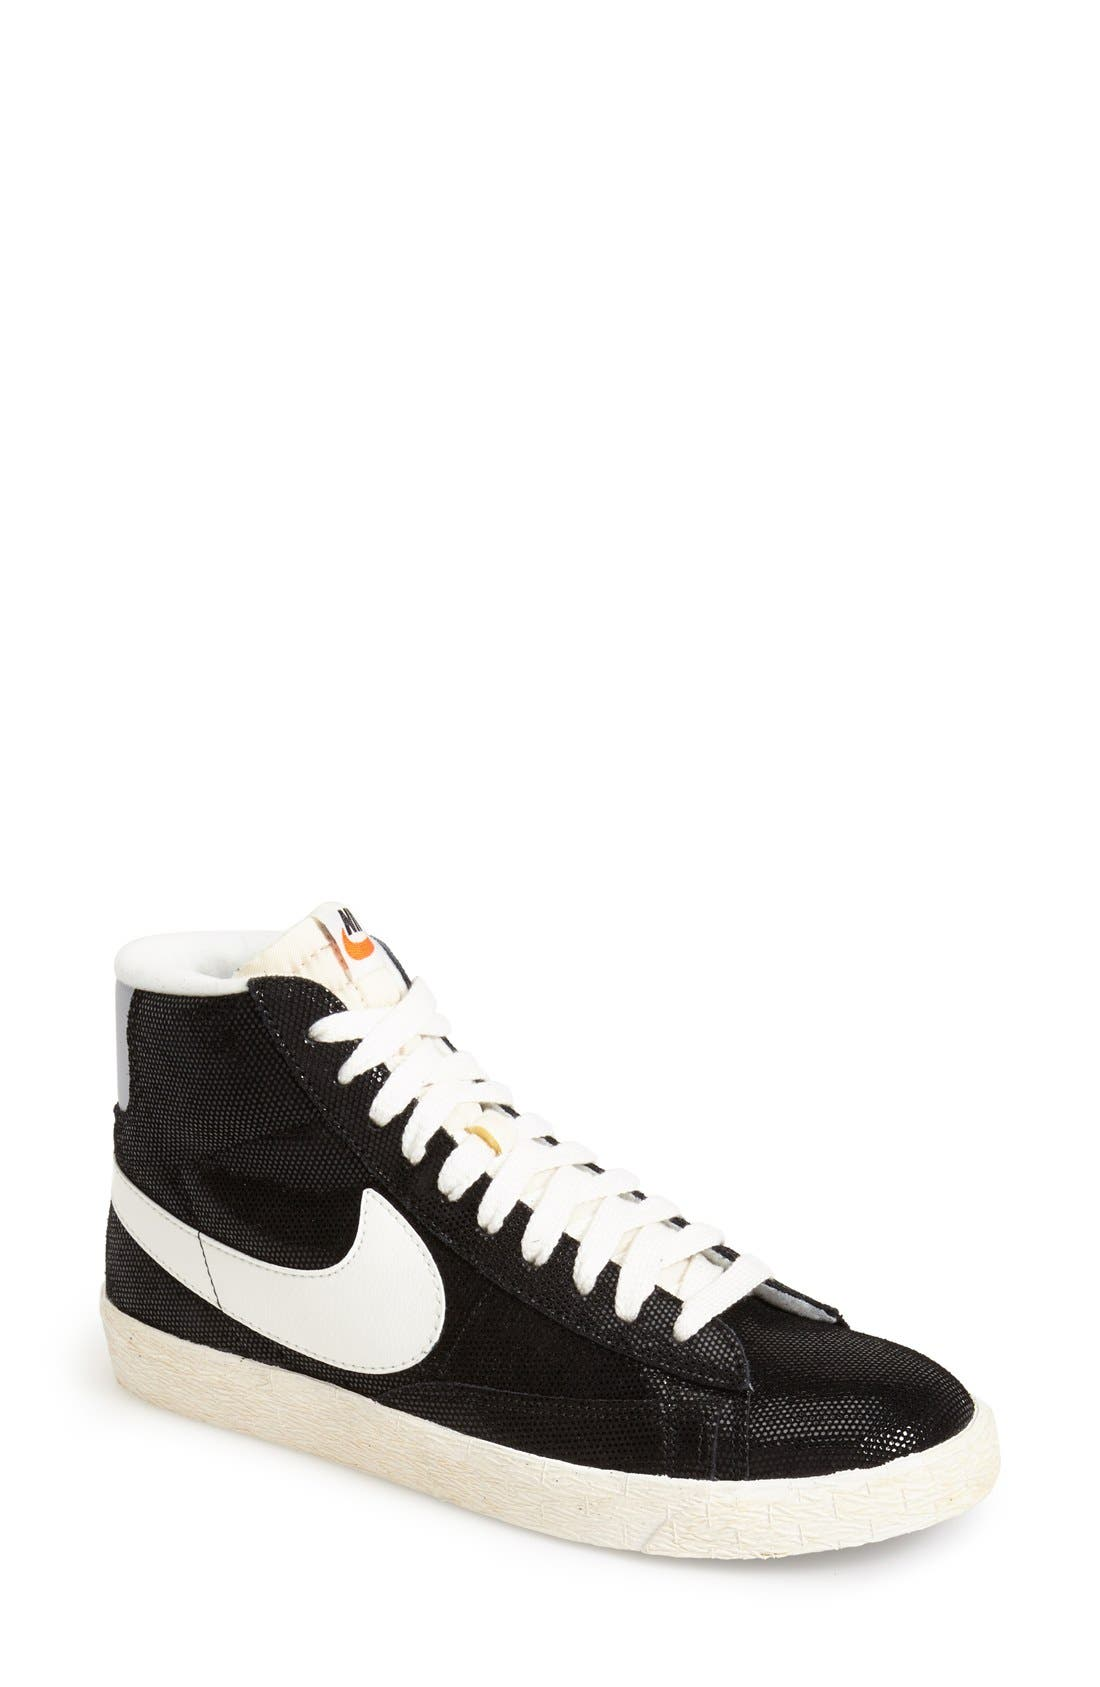 NIKE 'Blazer' Vintage High Top Basketball Sneaker, Main, color, 009